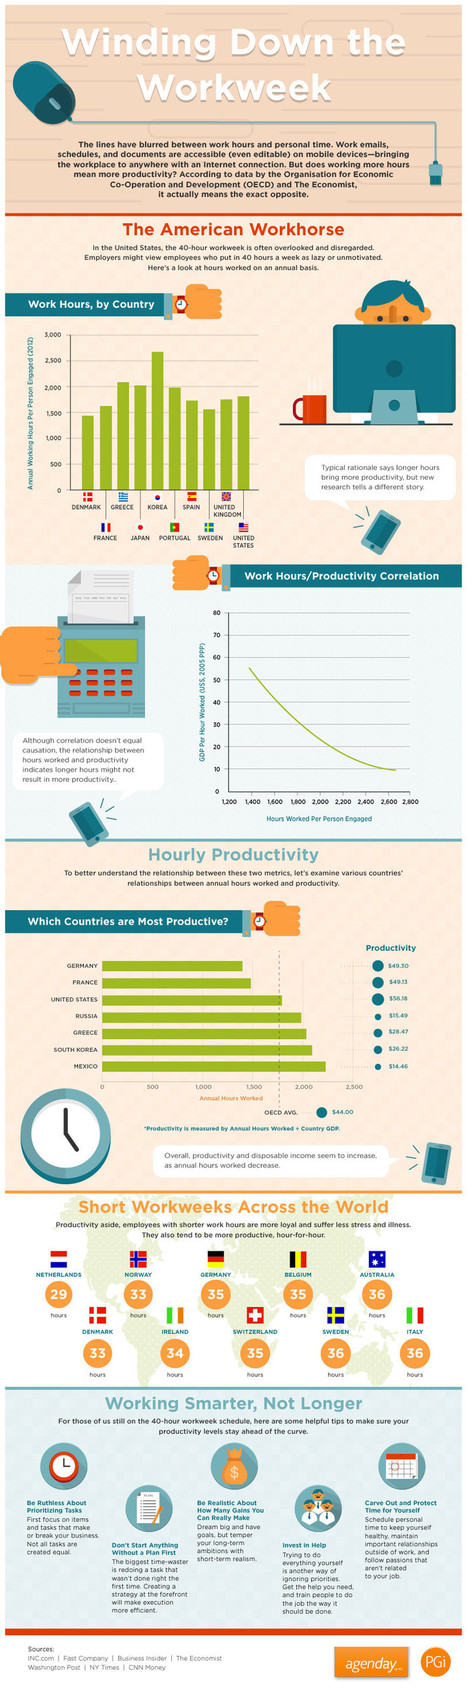 Can Working Longer Make You Less Productive? [INFOGRAPHIC] | digital marketing strategy | Scoop.it